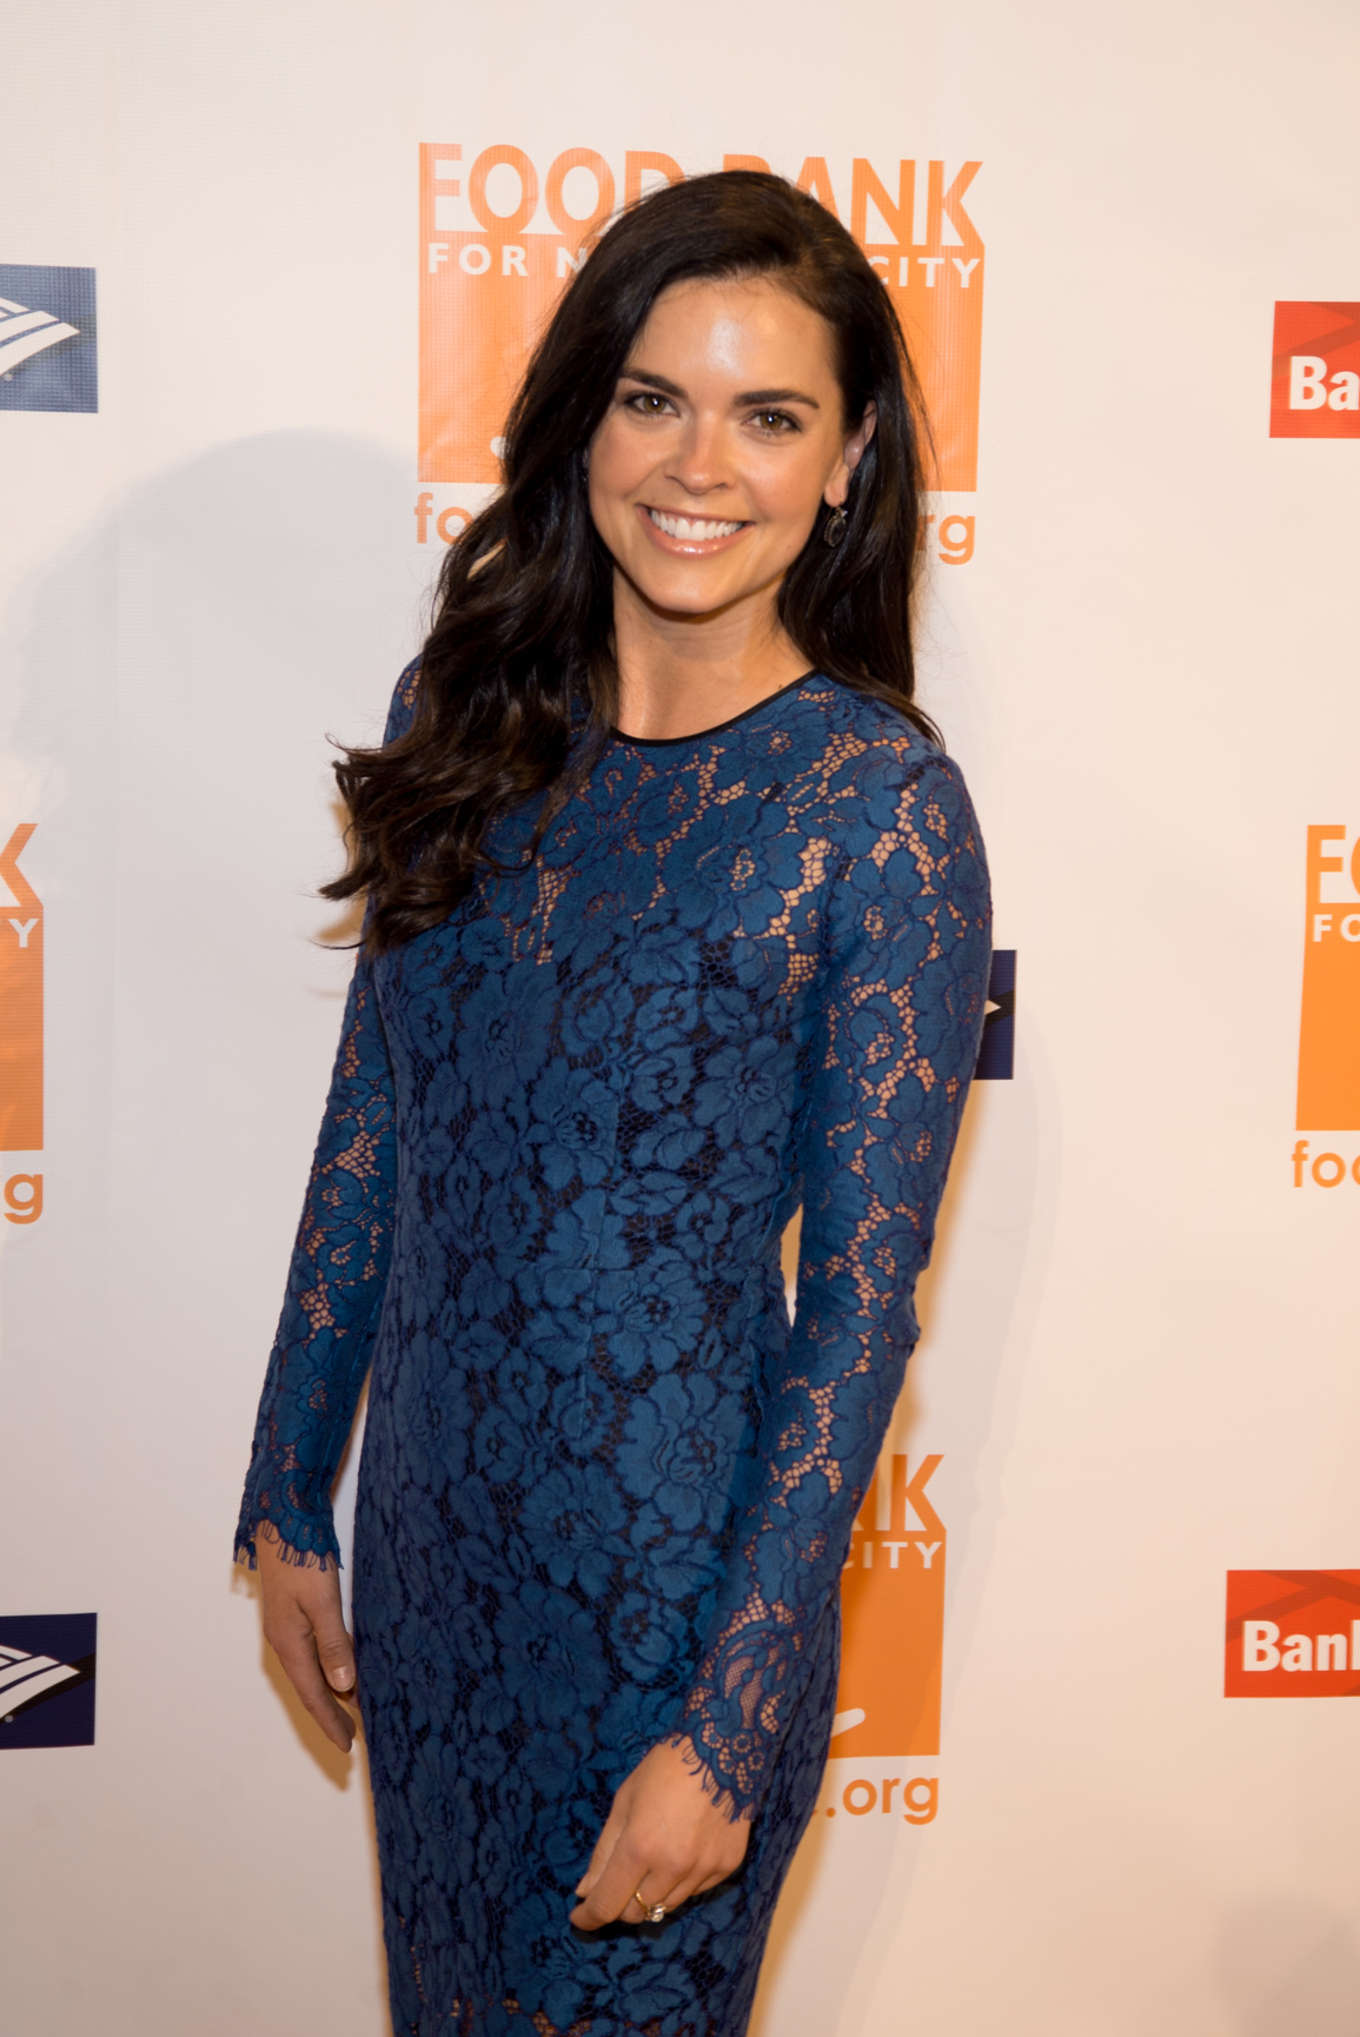 katie lee joel food bank for new york citys can do